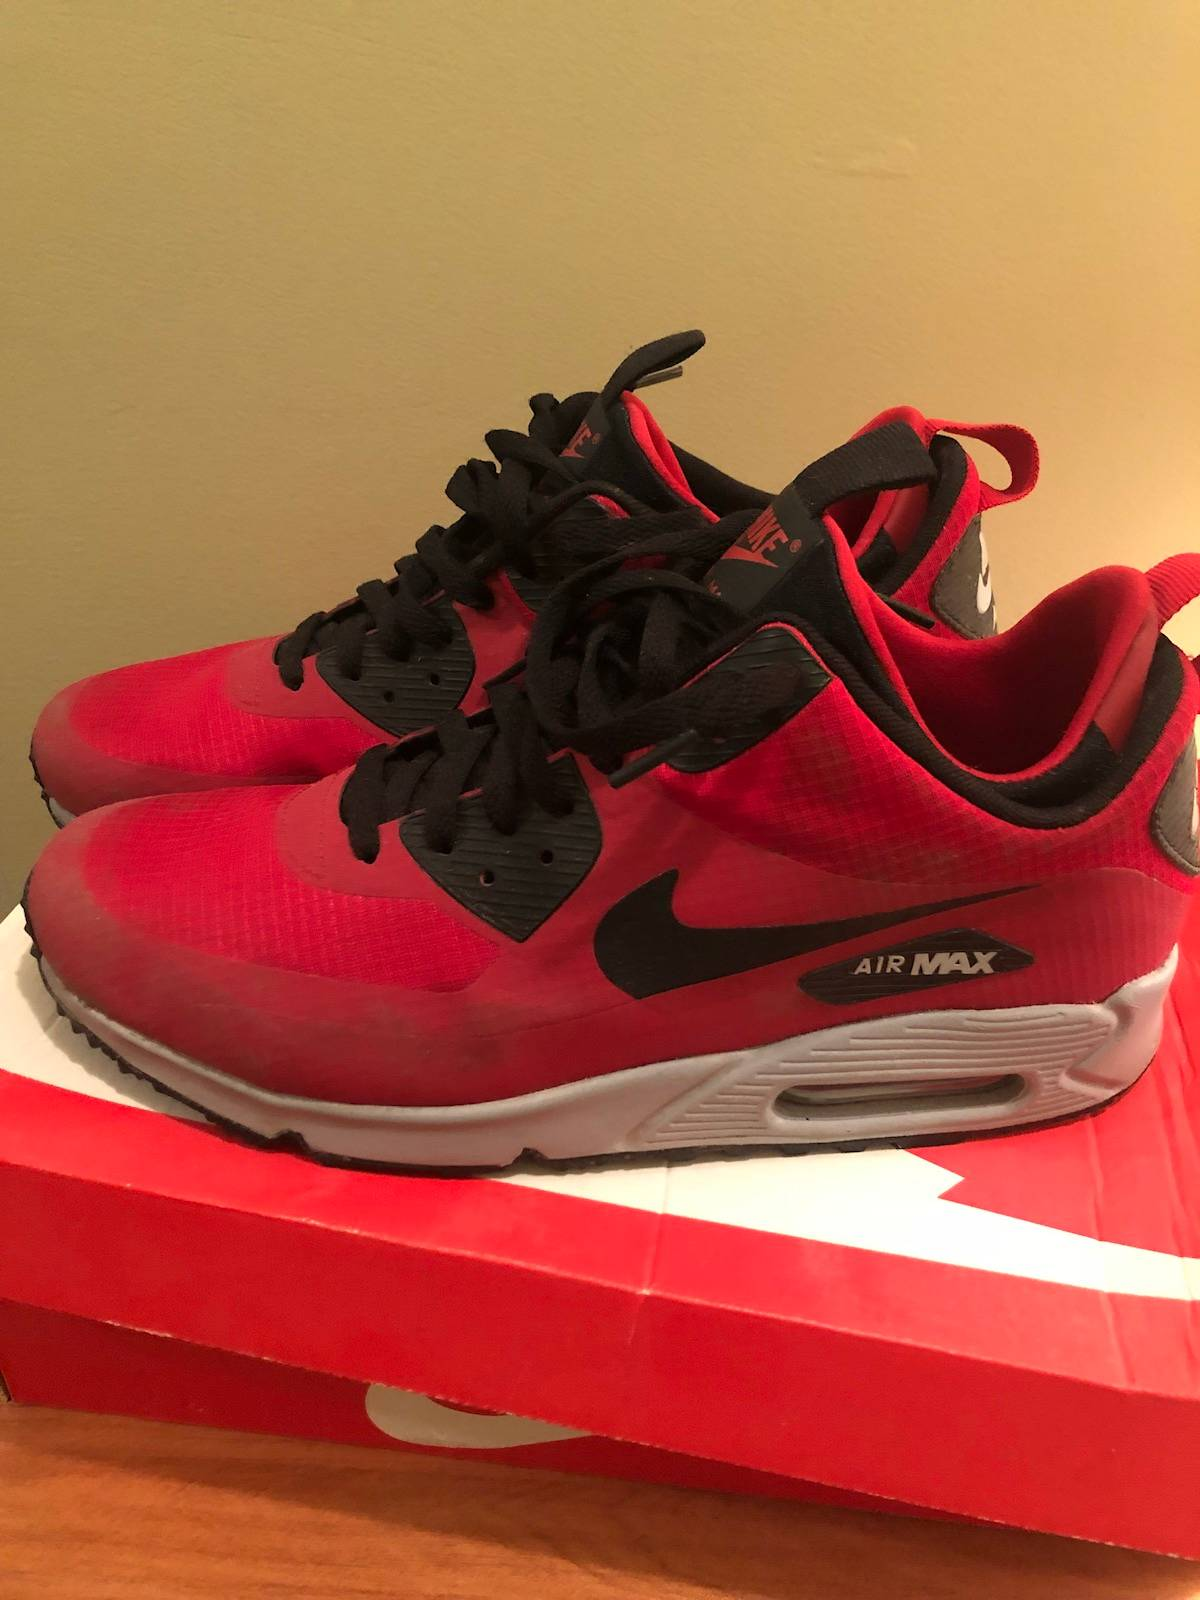 Nike Air Max 90 Mid Winter Size 10.5 $100